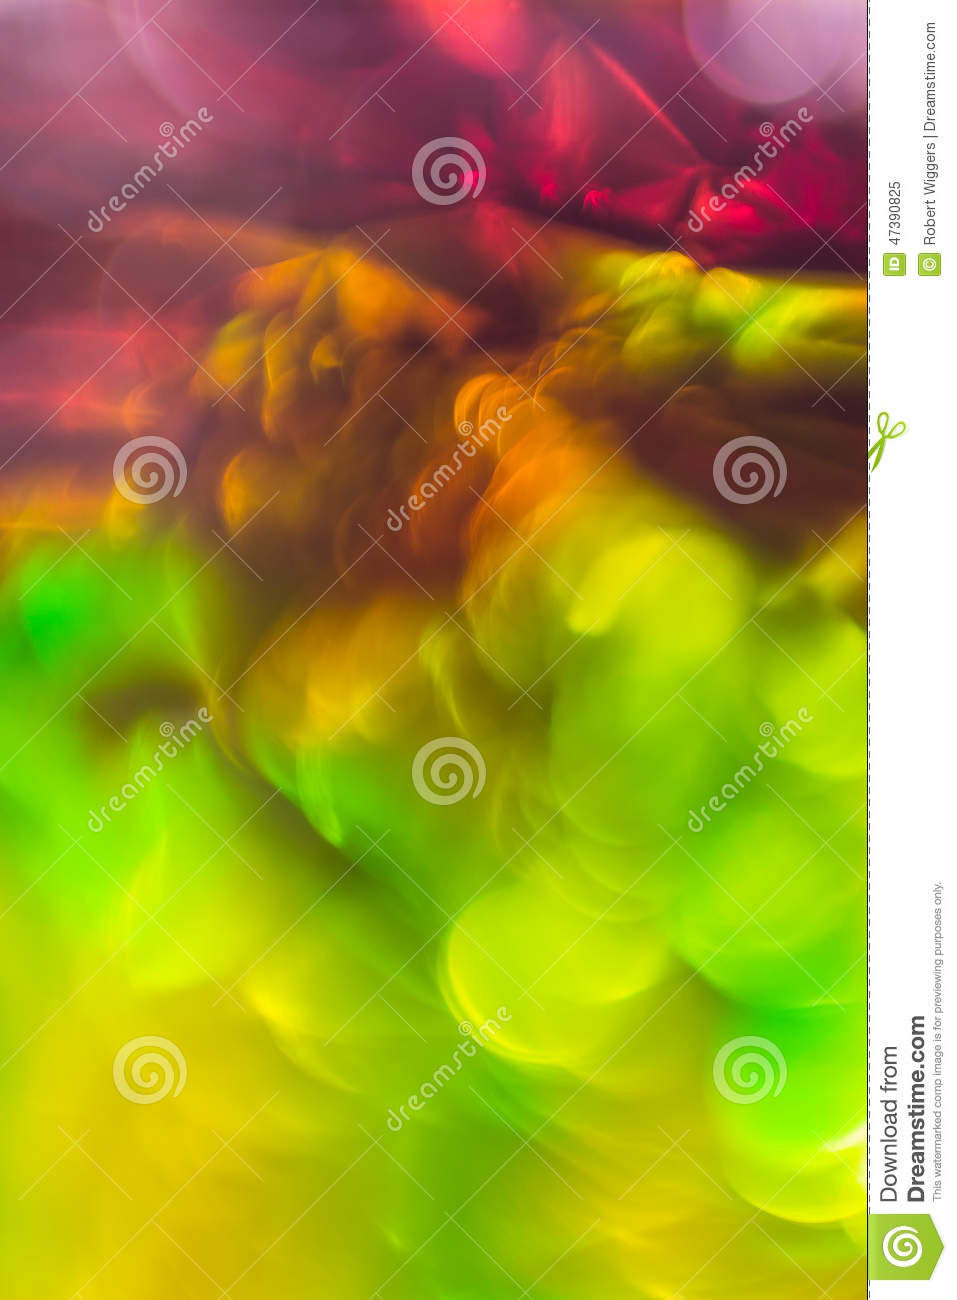 Abstract Background Flowing Color Over Tin Foil Stock